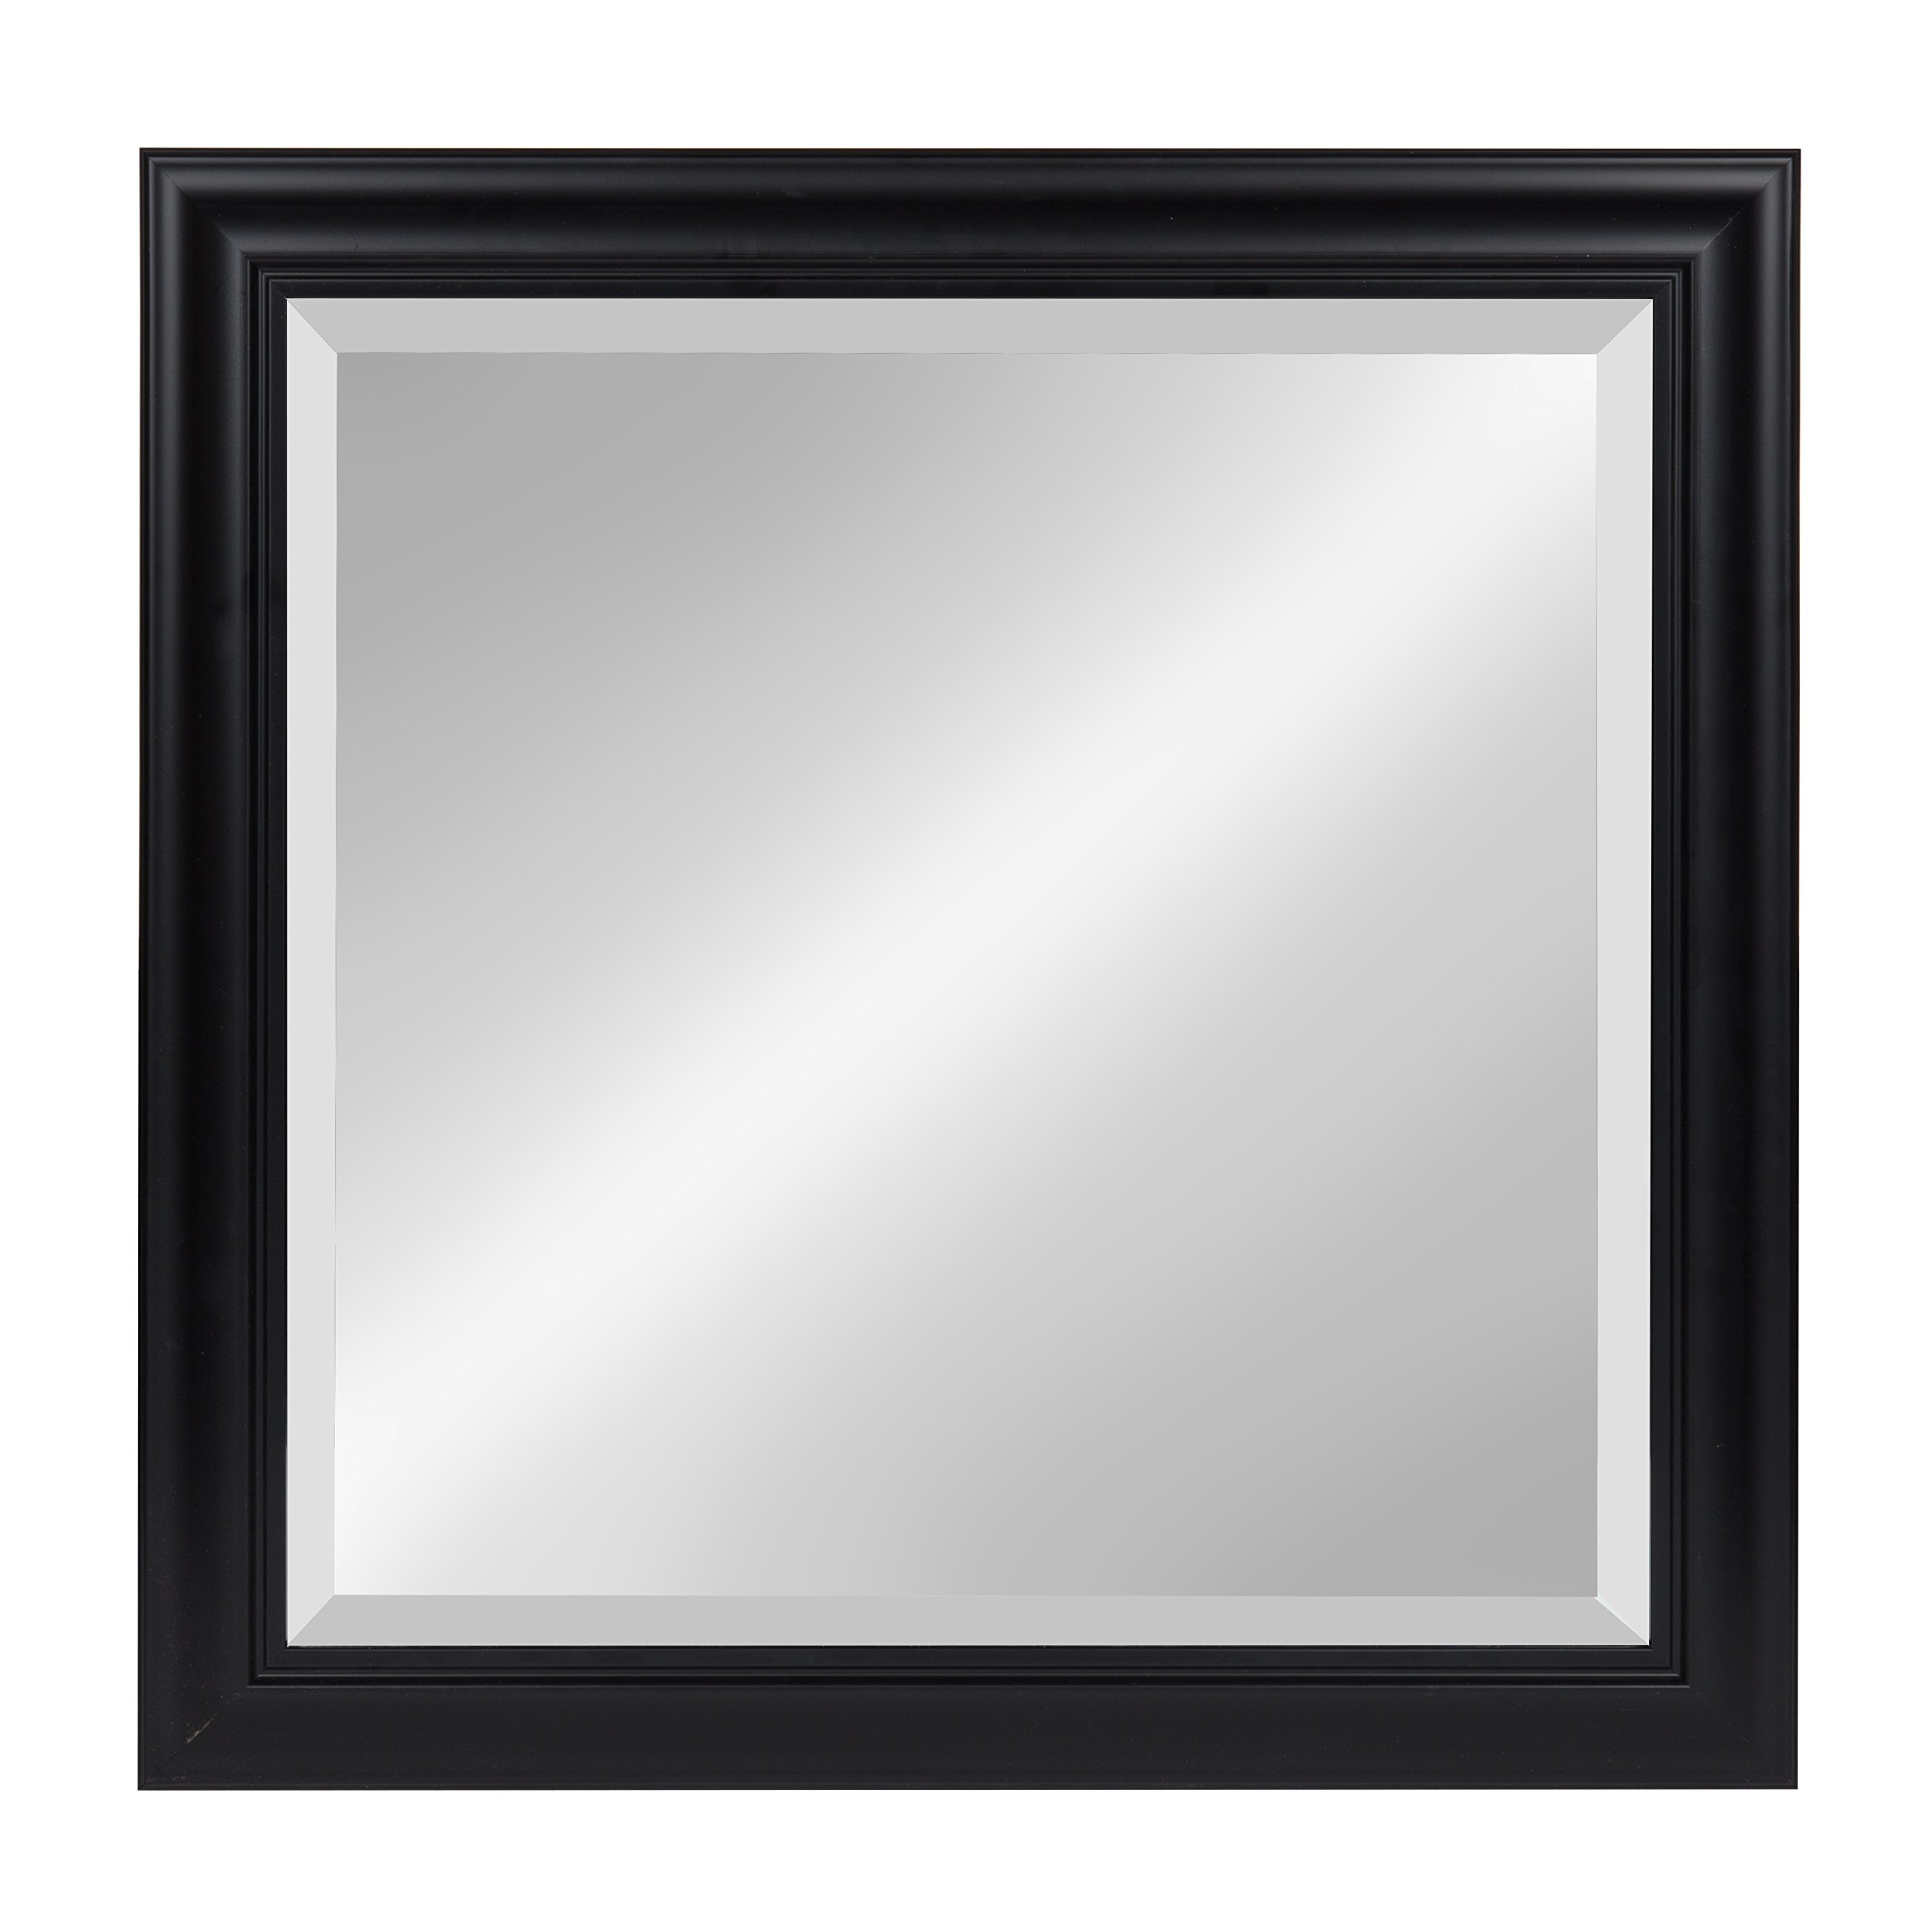 Kate And Laurel Dalat Square Framed Beveled Wall Mirror 24x24 Black